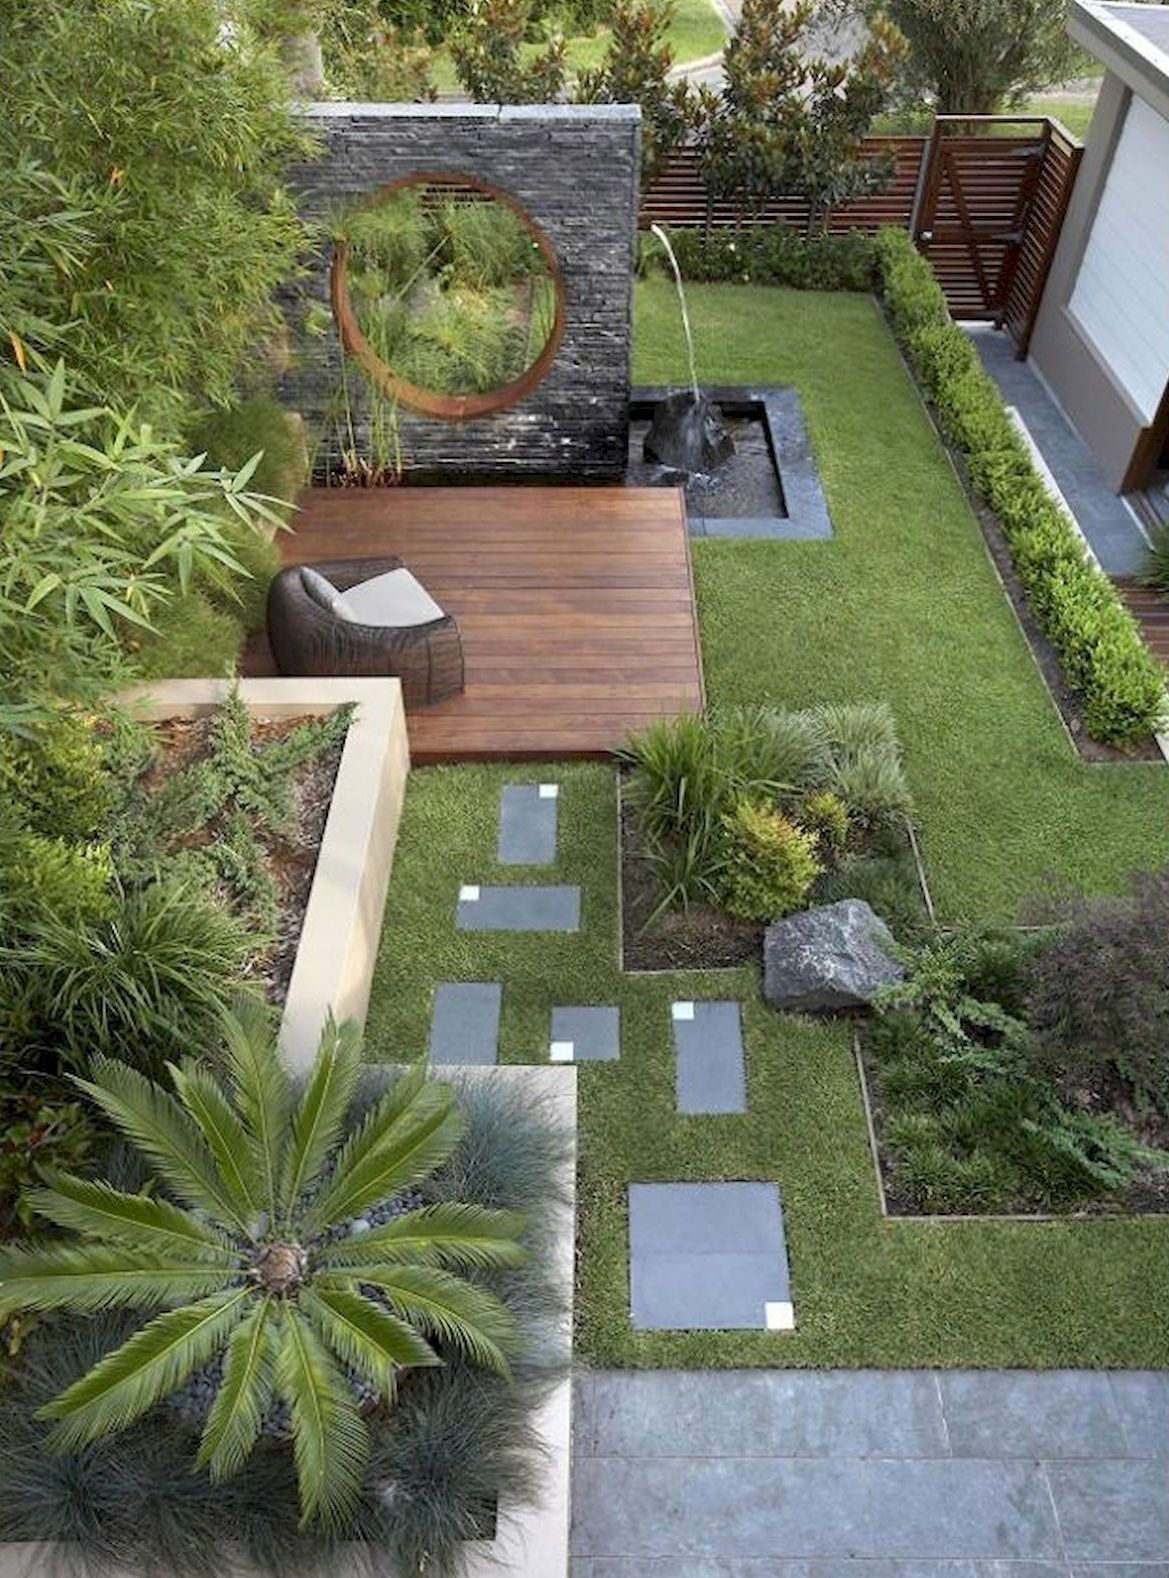 30 Outstanding Garden Design Ideas For Awesome Garden To Trytry Easy Backyard Landscaping Modern Backyard Landscaping Small Backyard Landscaping